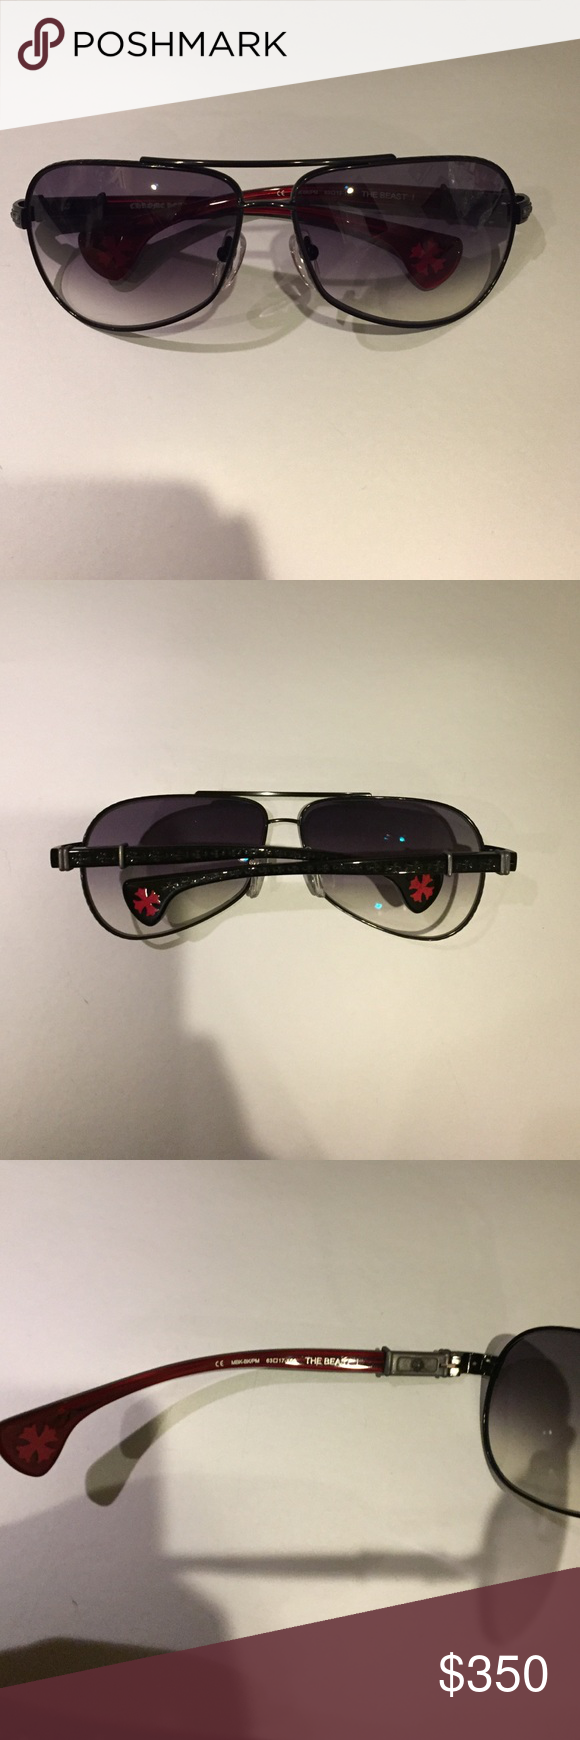 341b2da4dedb These glasses have polarized lenses. The name is